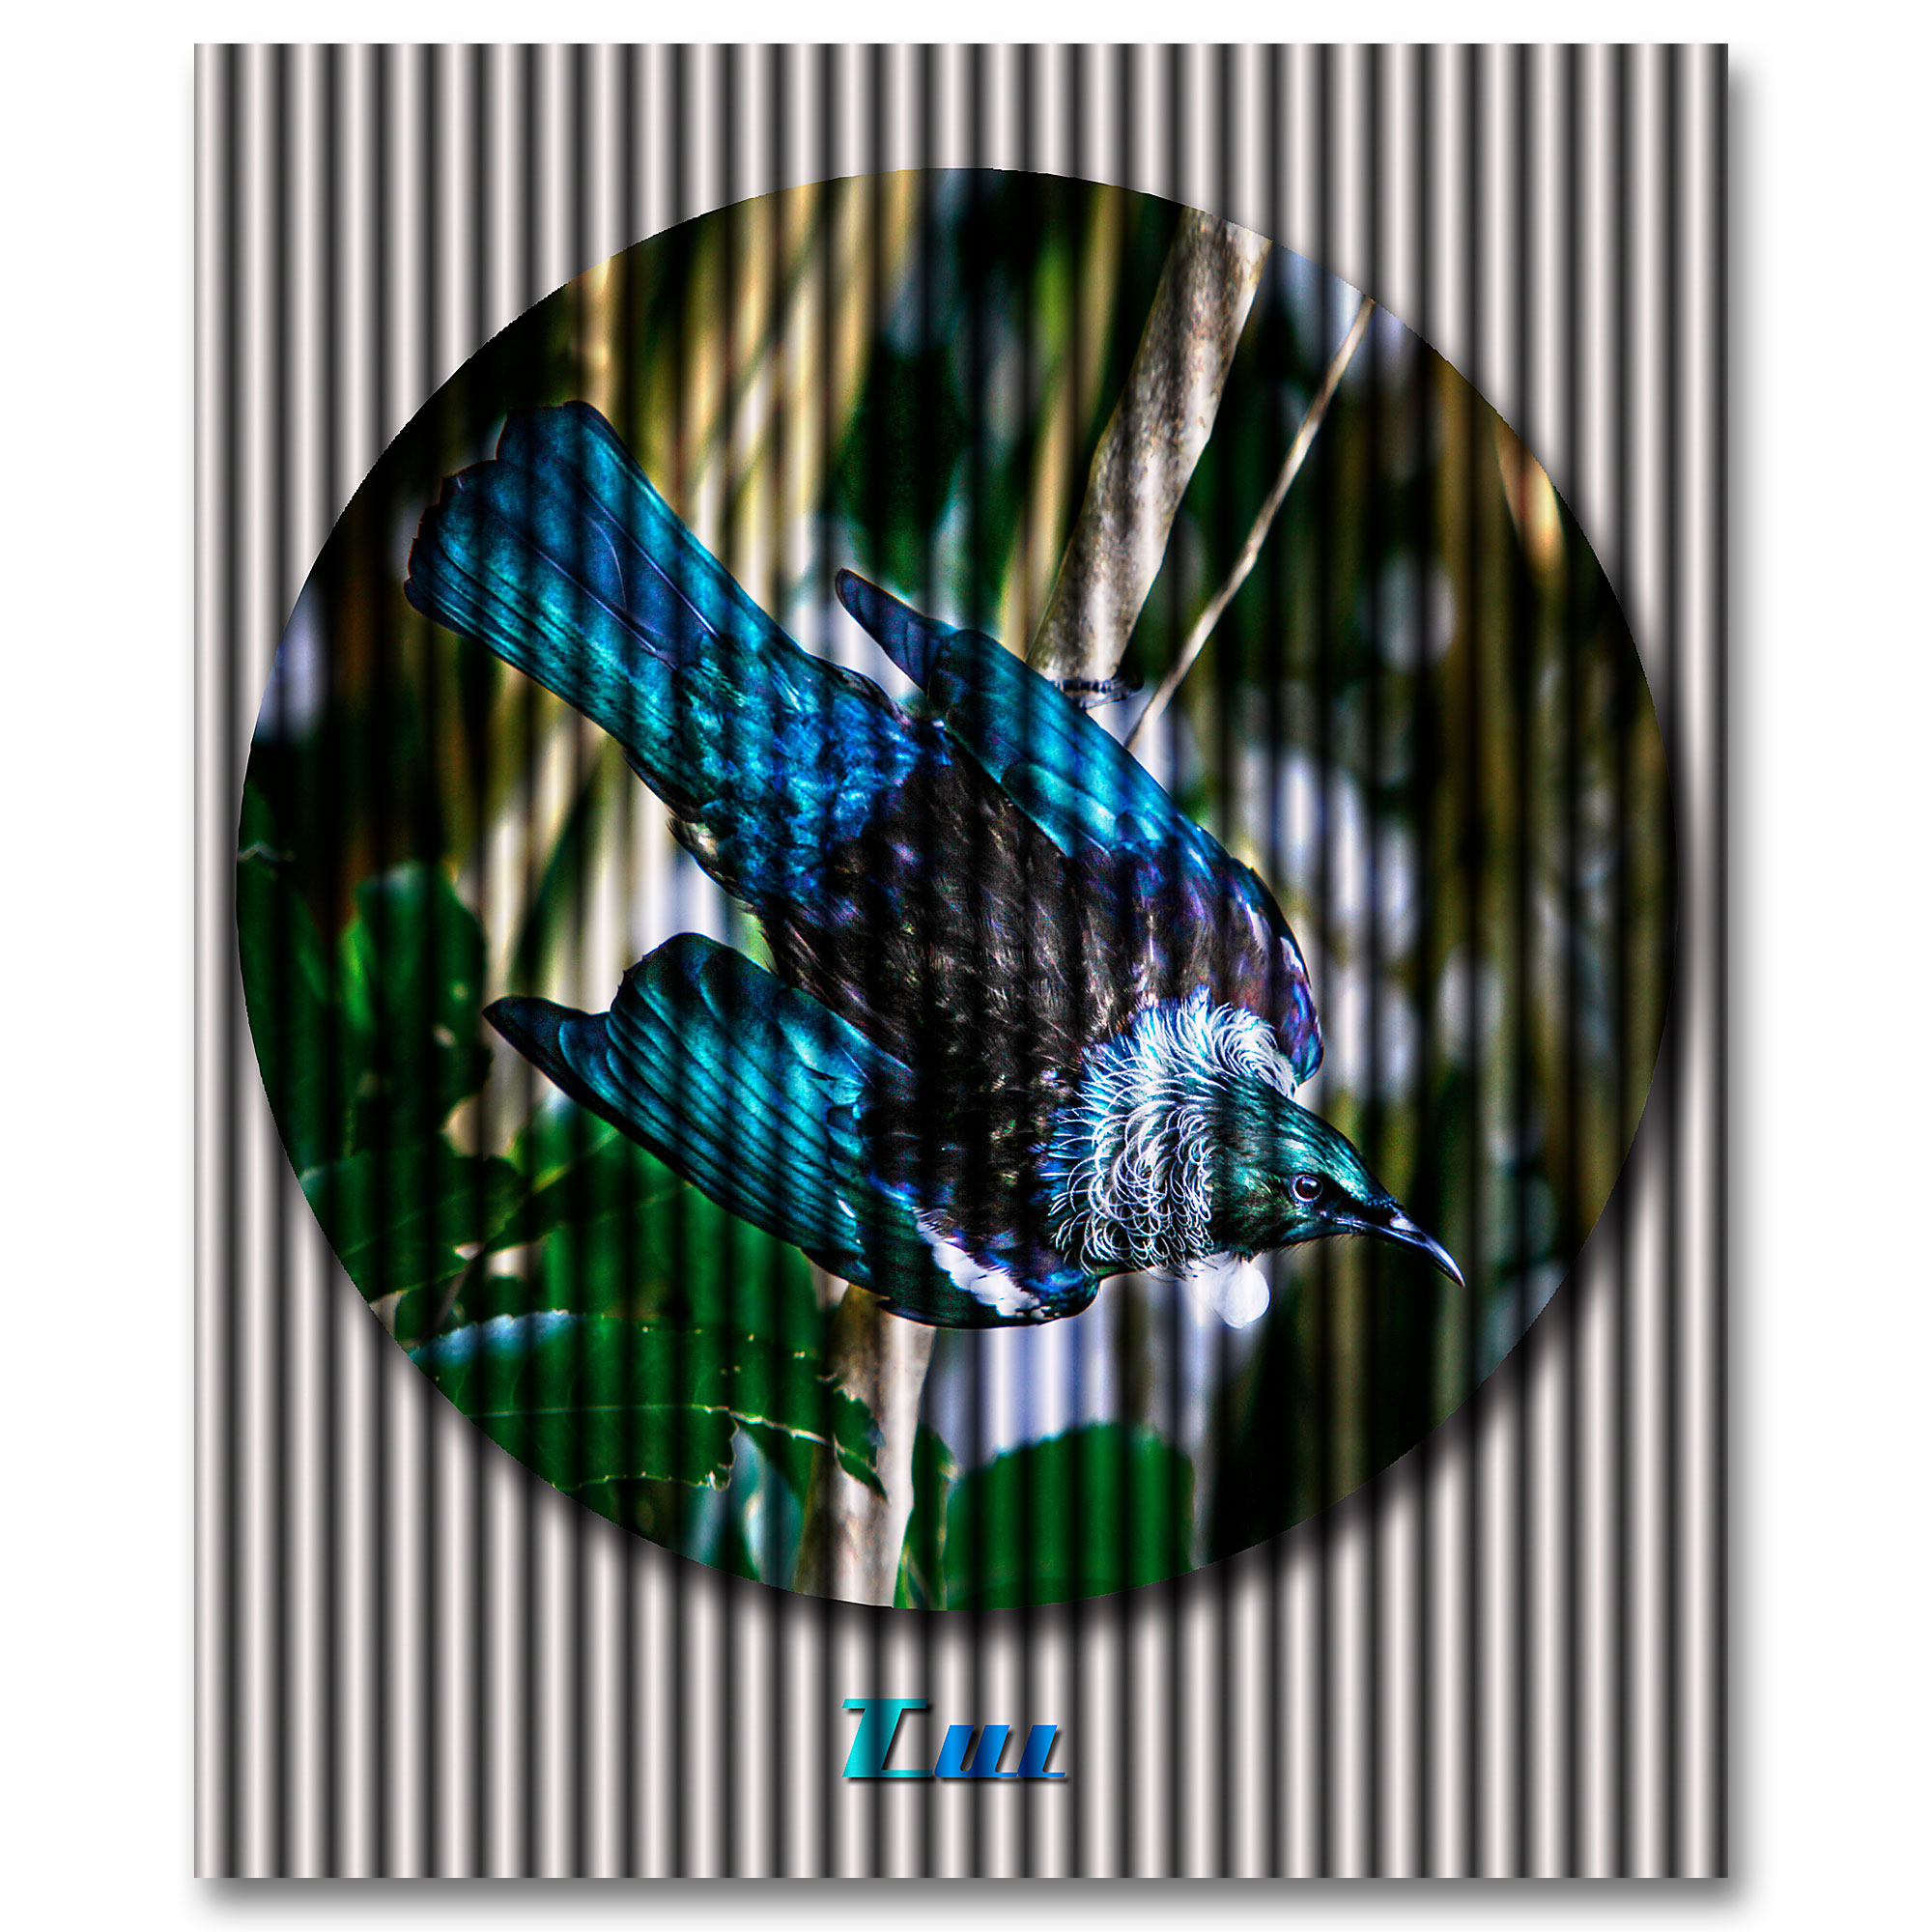 The New Zealand Tui, vibrant, intelligent, alert and with purpose. Art by ian anderson.